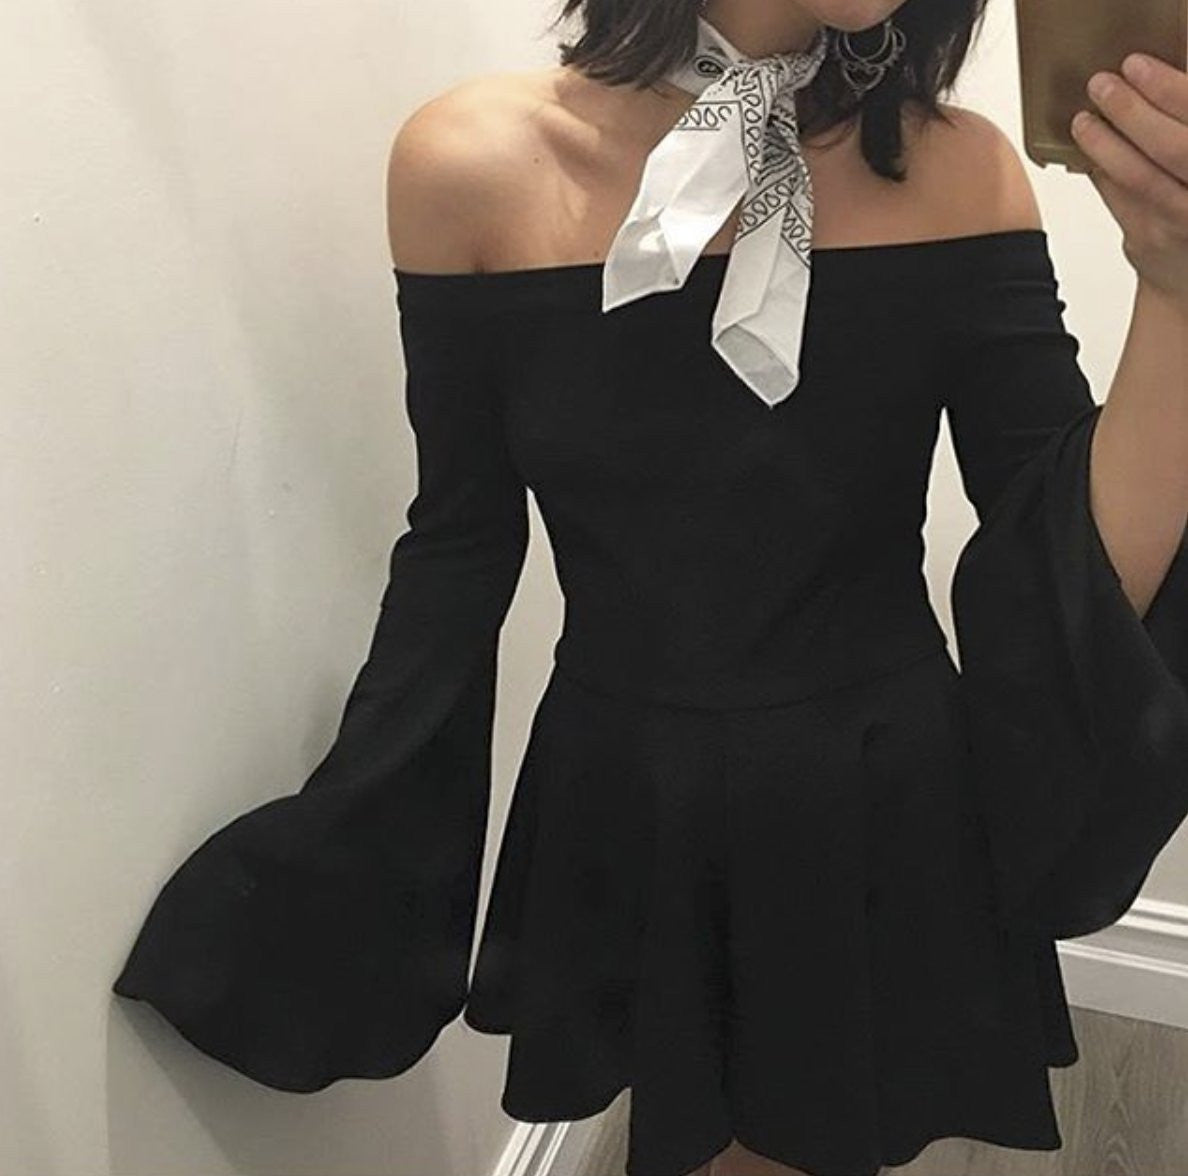 CASPER & PEARL Ruben Off The Shoulder Romper in Black - Lookbook Boutique